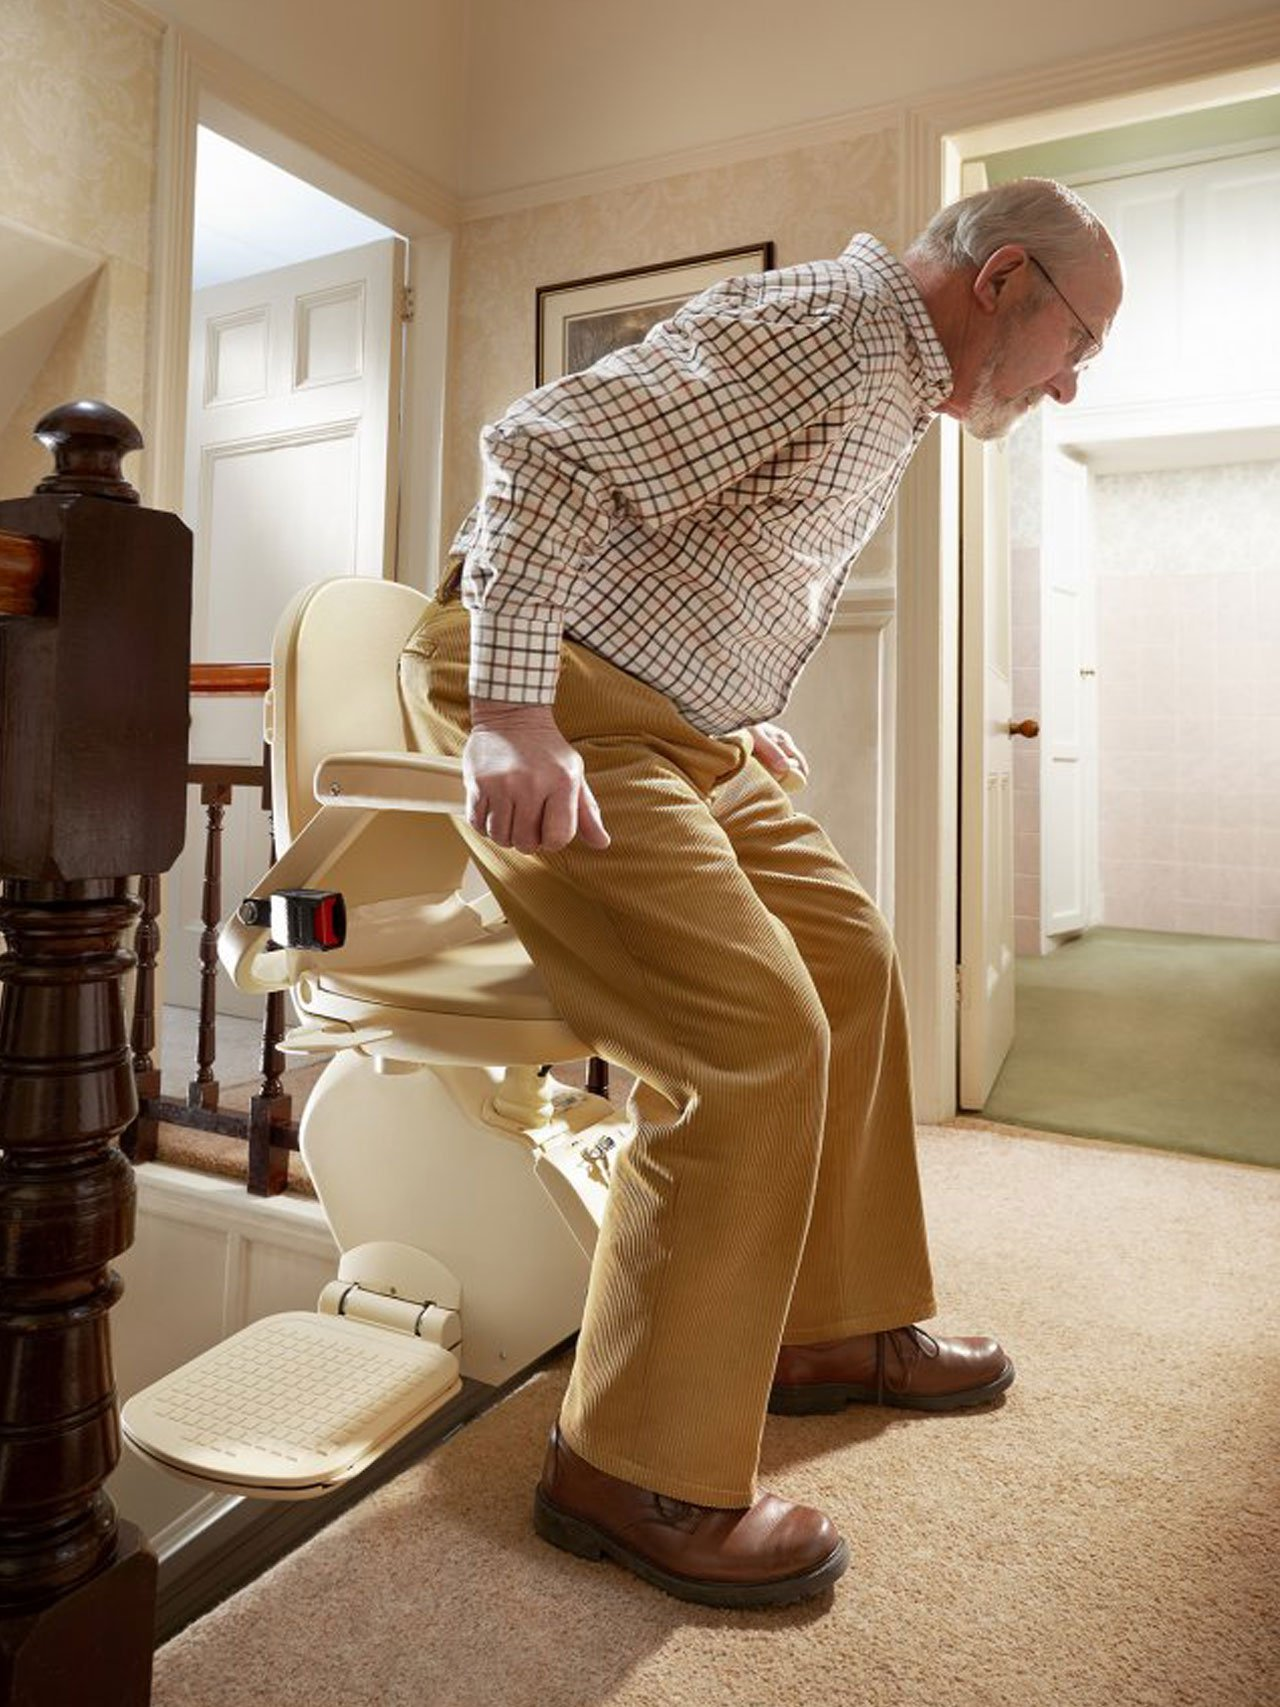 Comprehensive stairlift services